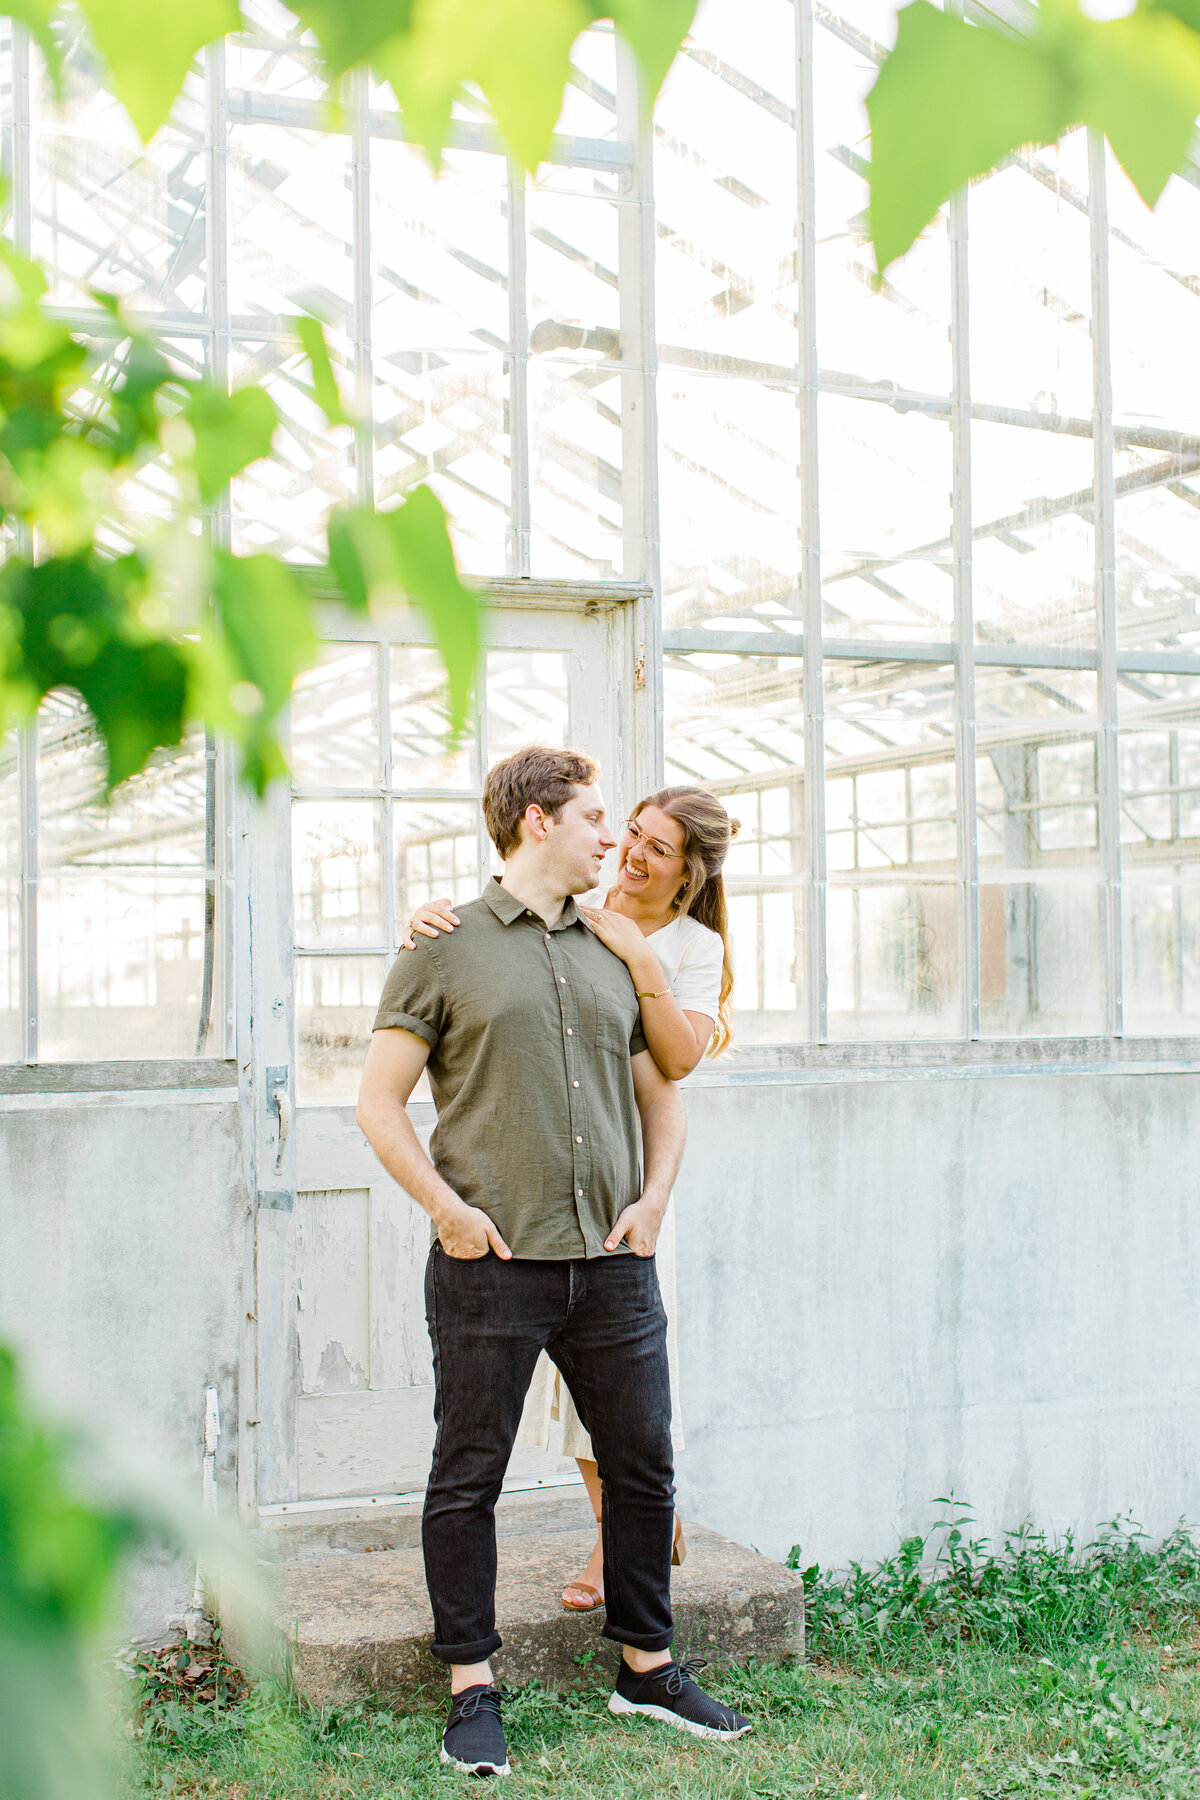 nicole-d-engagement-session-grey-loft-studio-2020-21